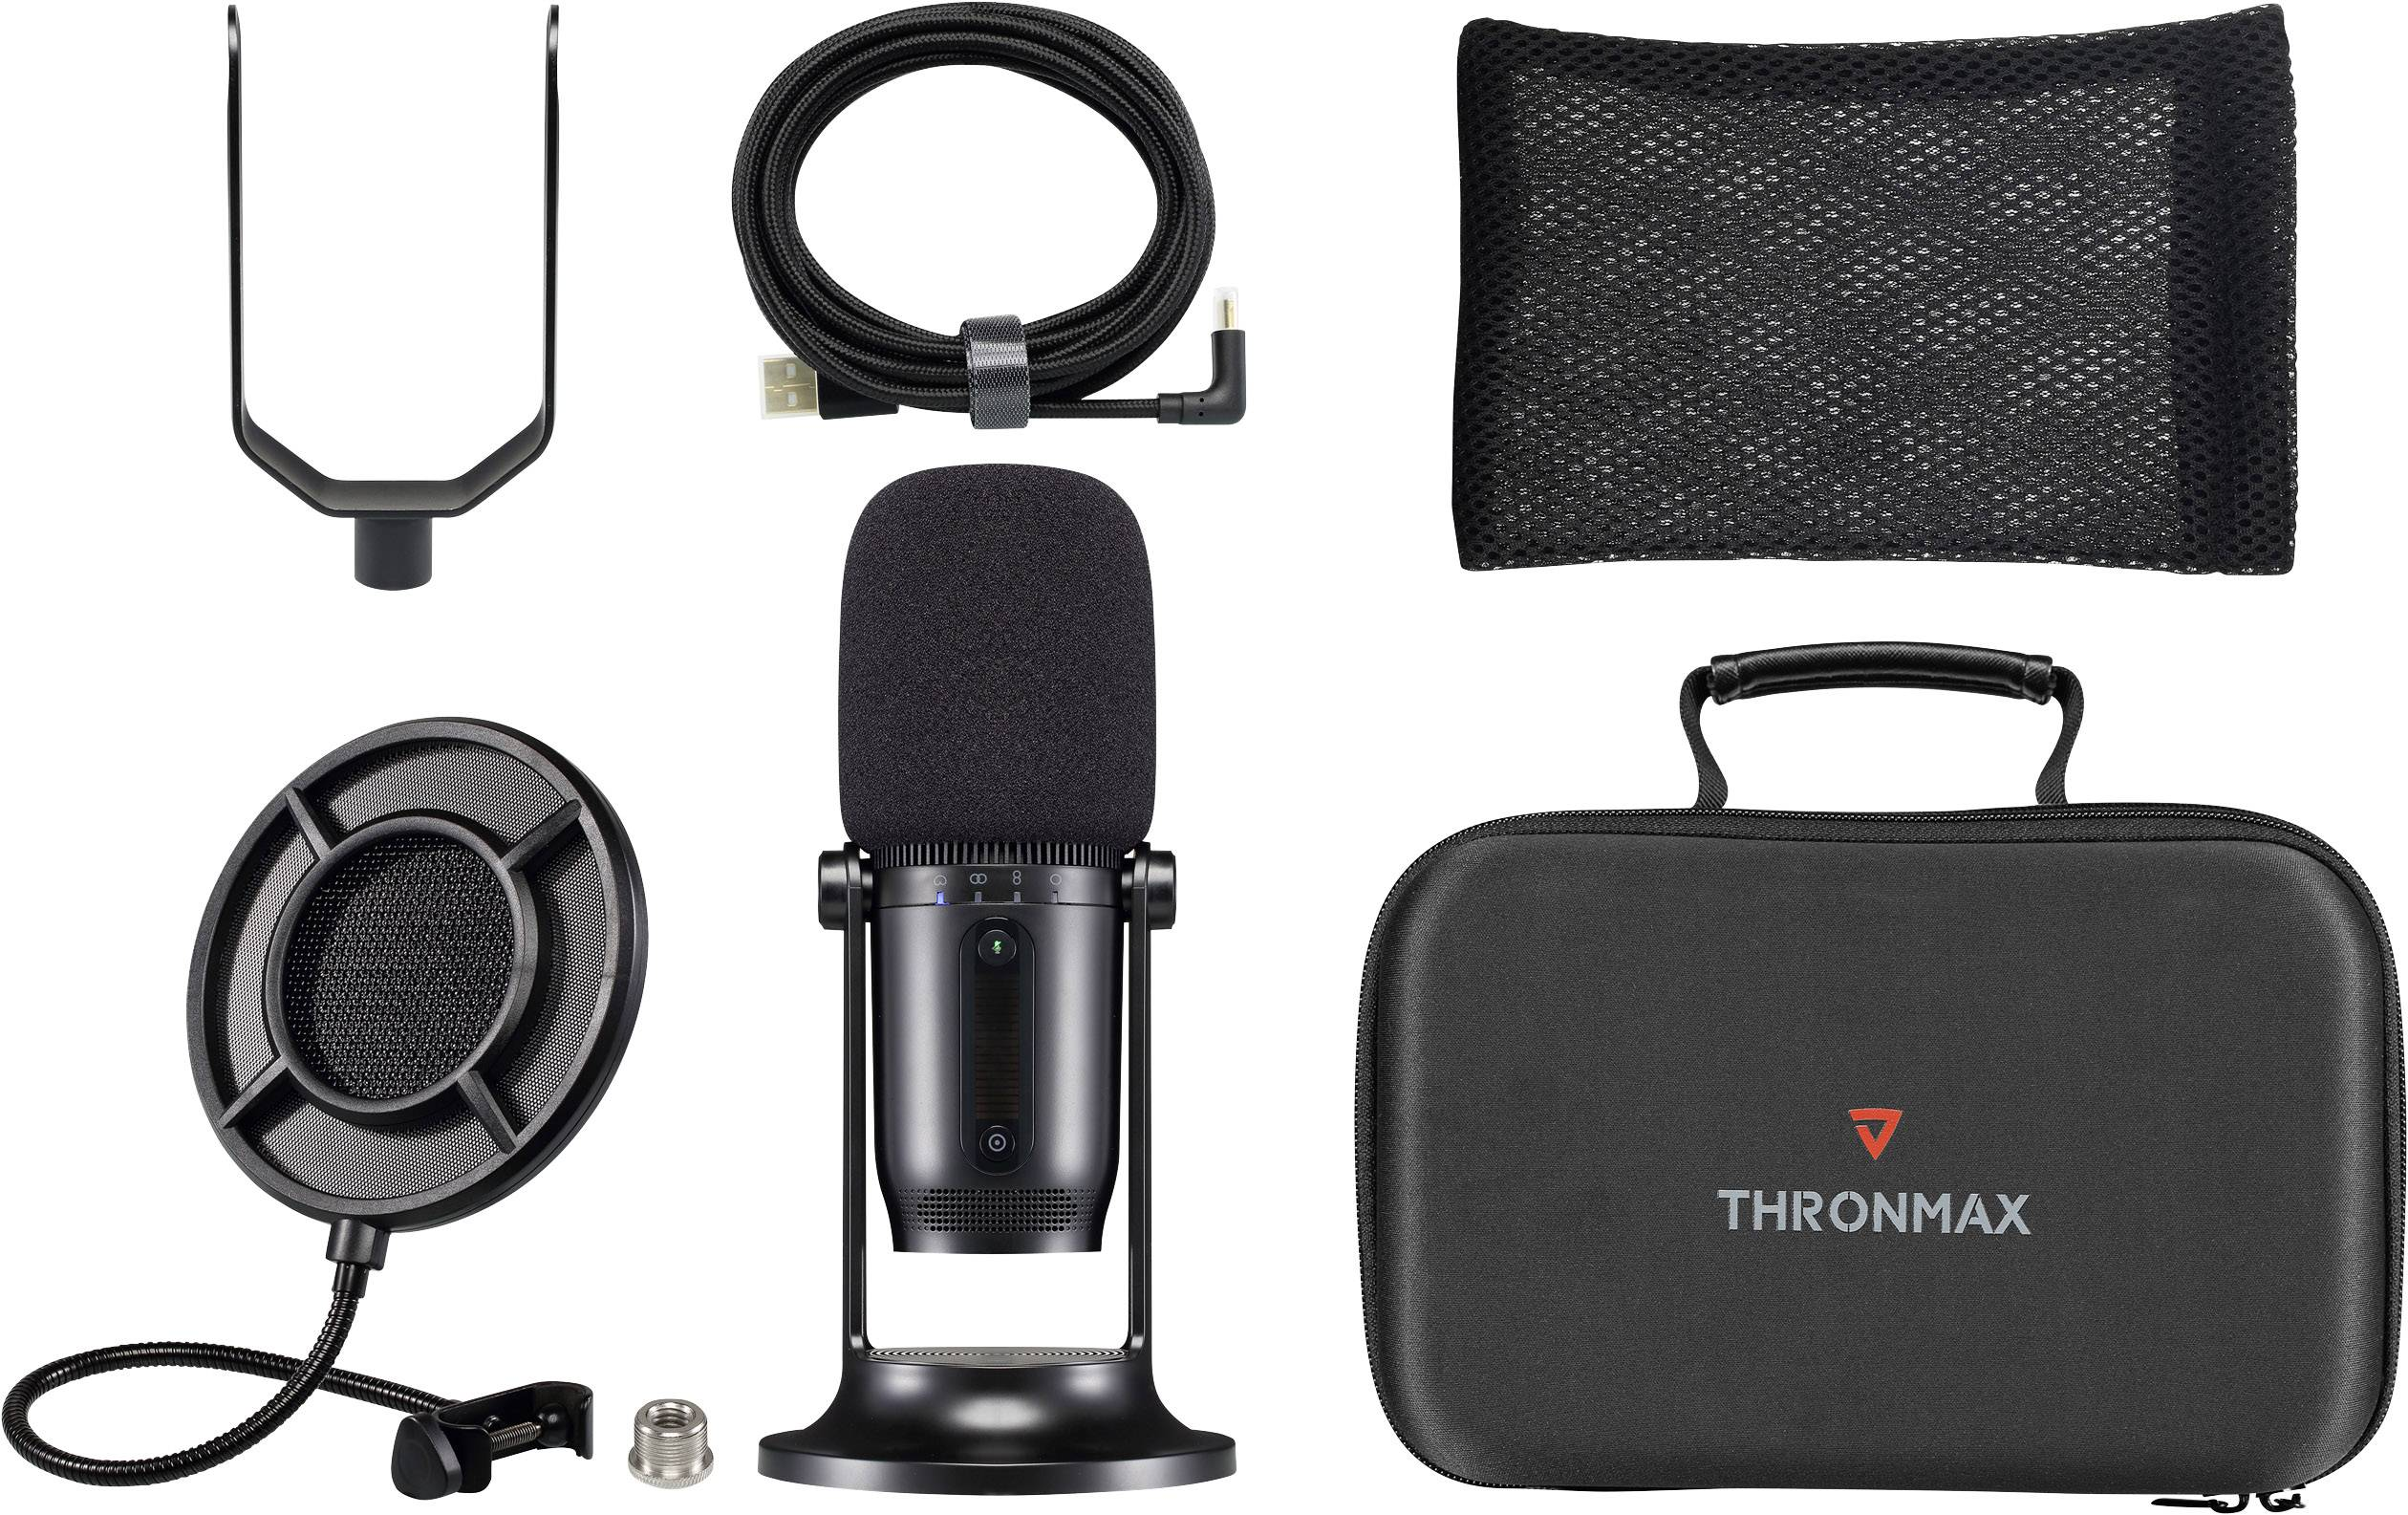 Thronmax M2KIT Stand USB studio microphone Transfer type:Corded Stand,  incl. cable, incl. clip, incl. bag, incl. pop fil | Conrad.com